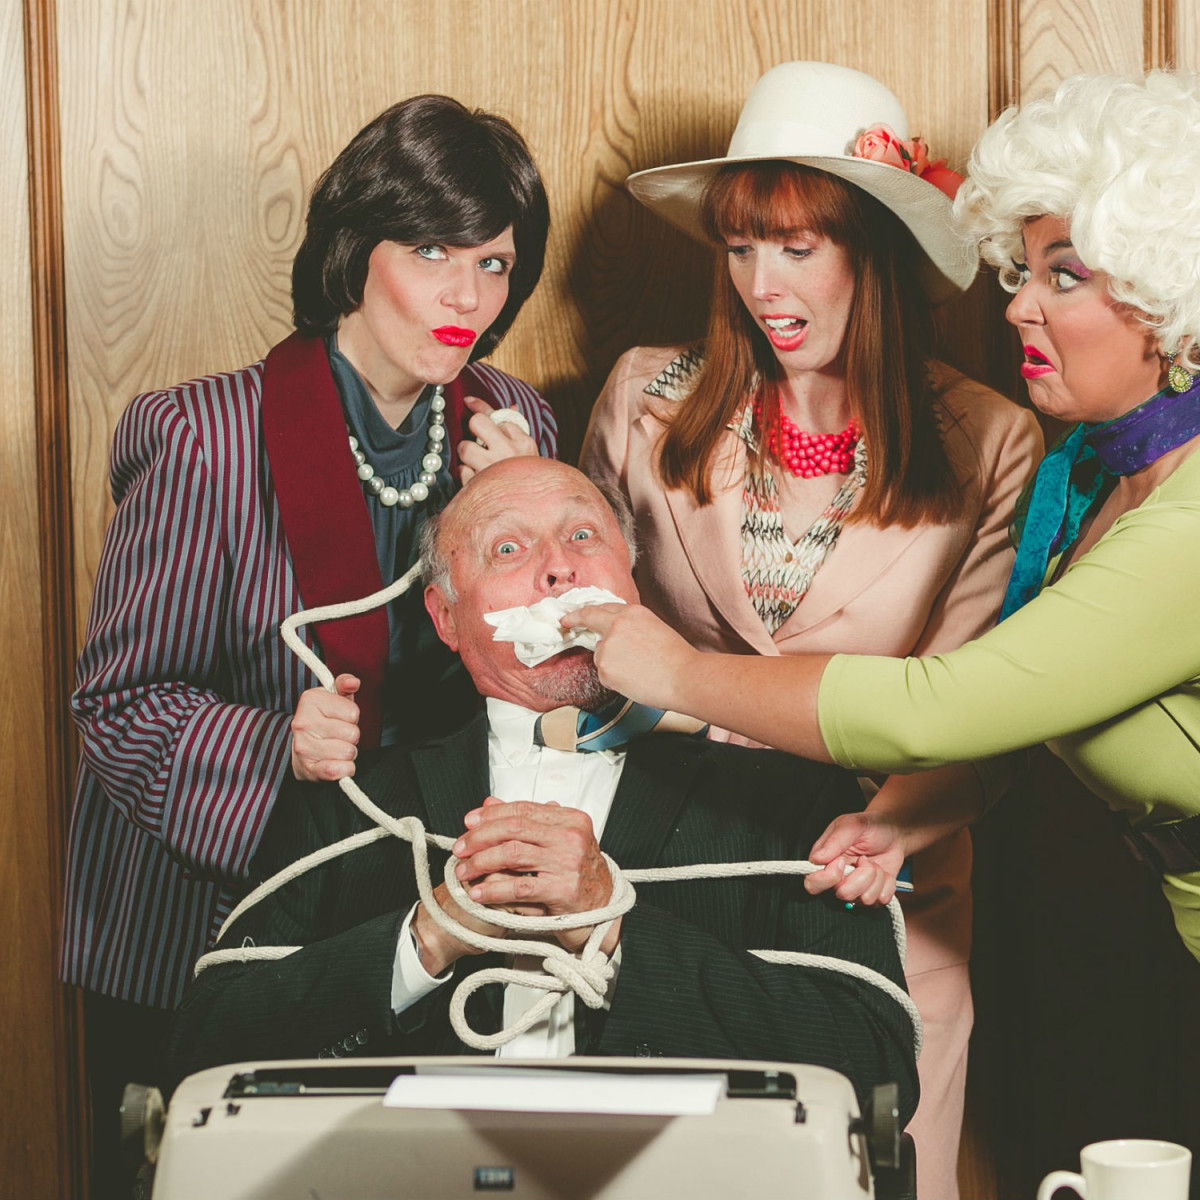 Theatre Arlington presents 9 to 5 The Musical